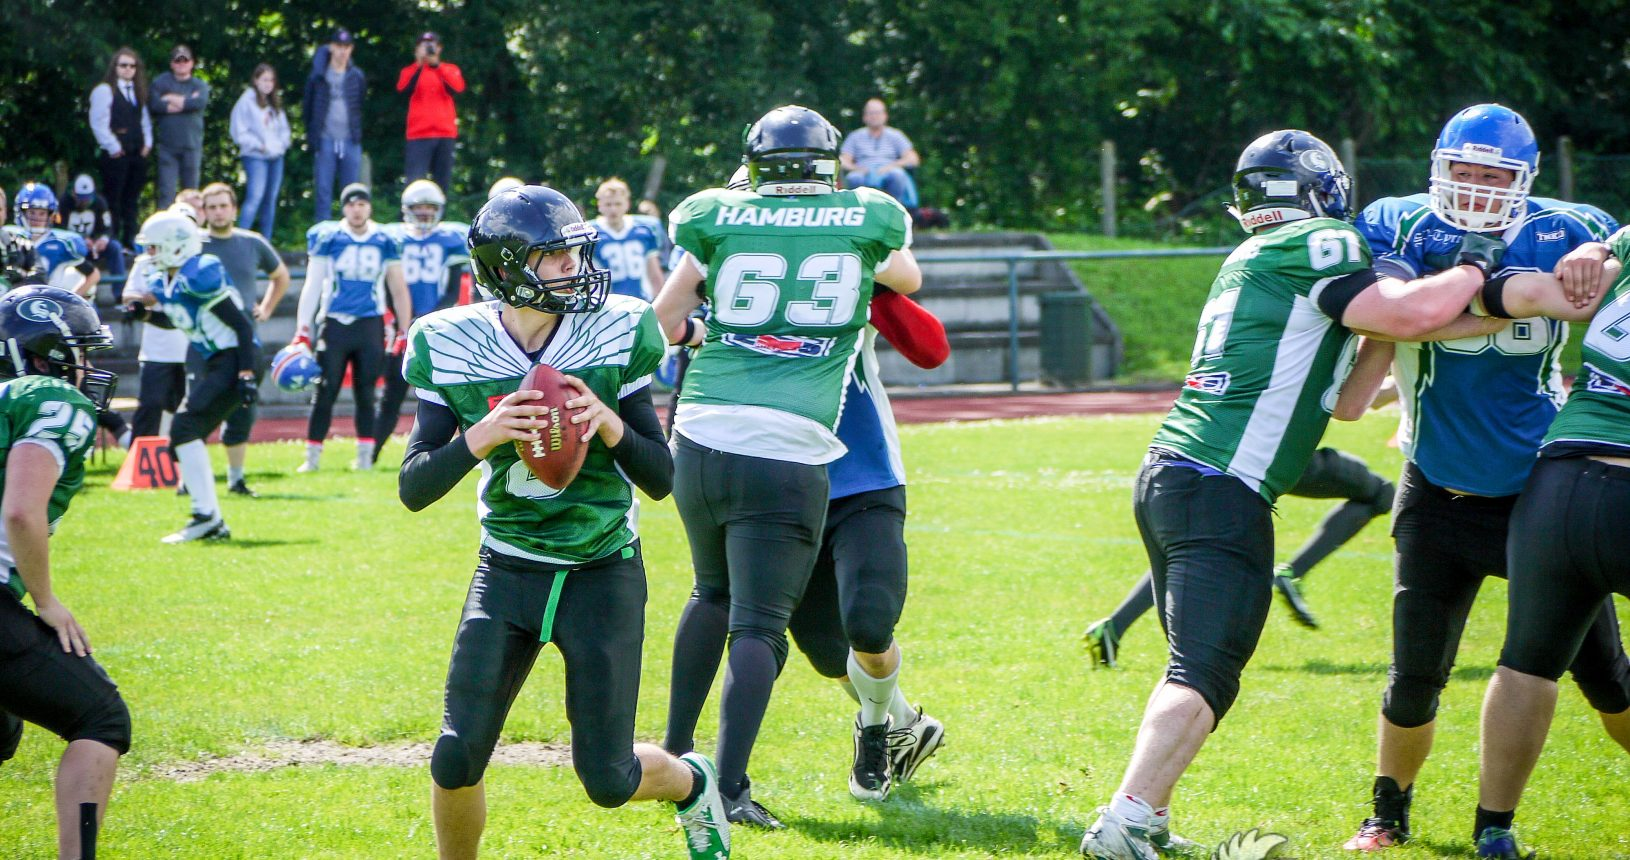 2017-07-02 Hamburg Iron Swans vs. Norderstedt Mustangs